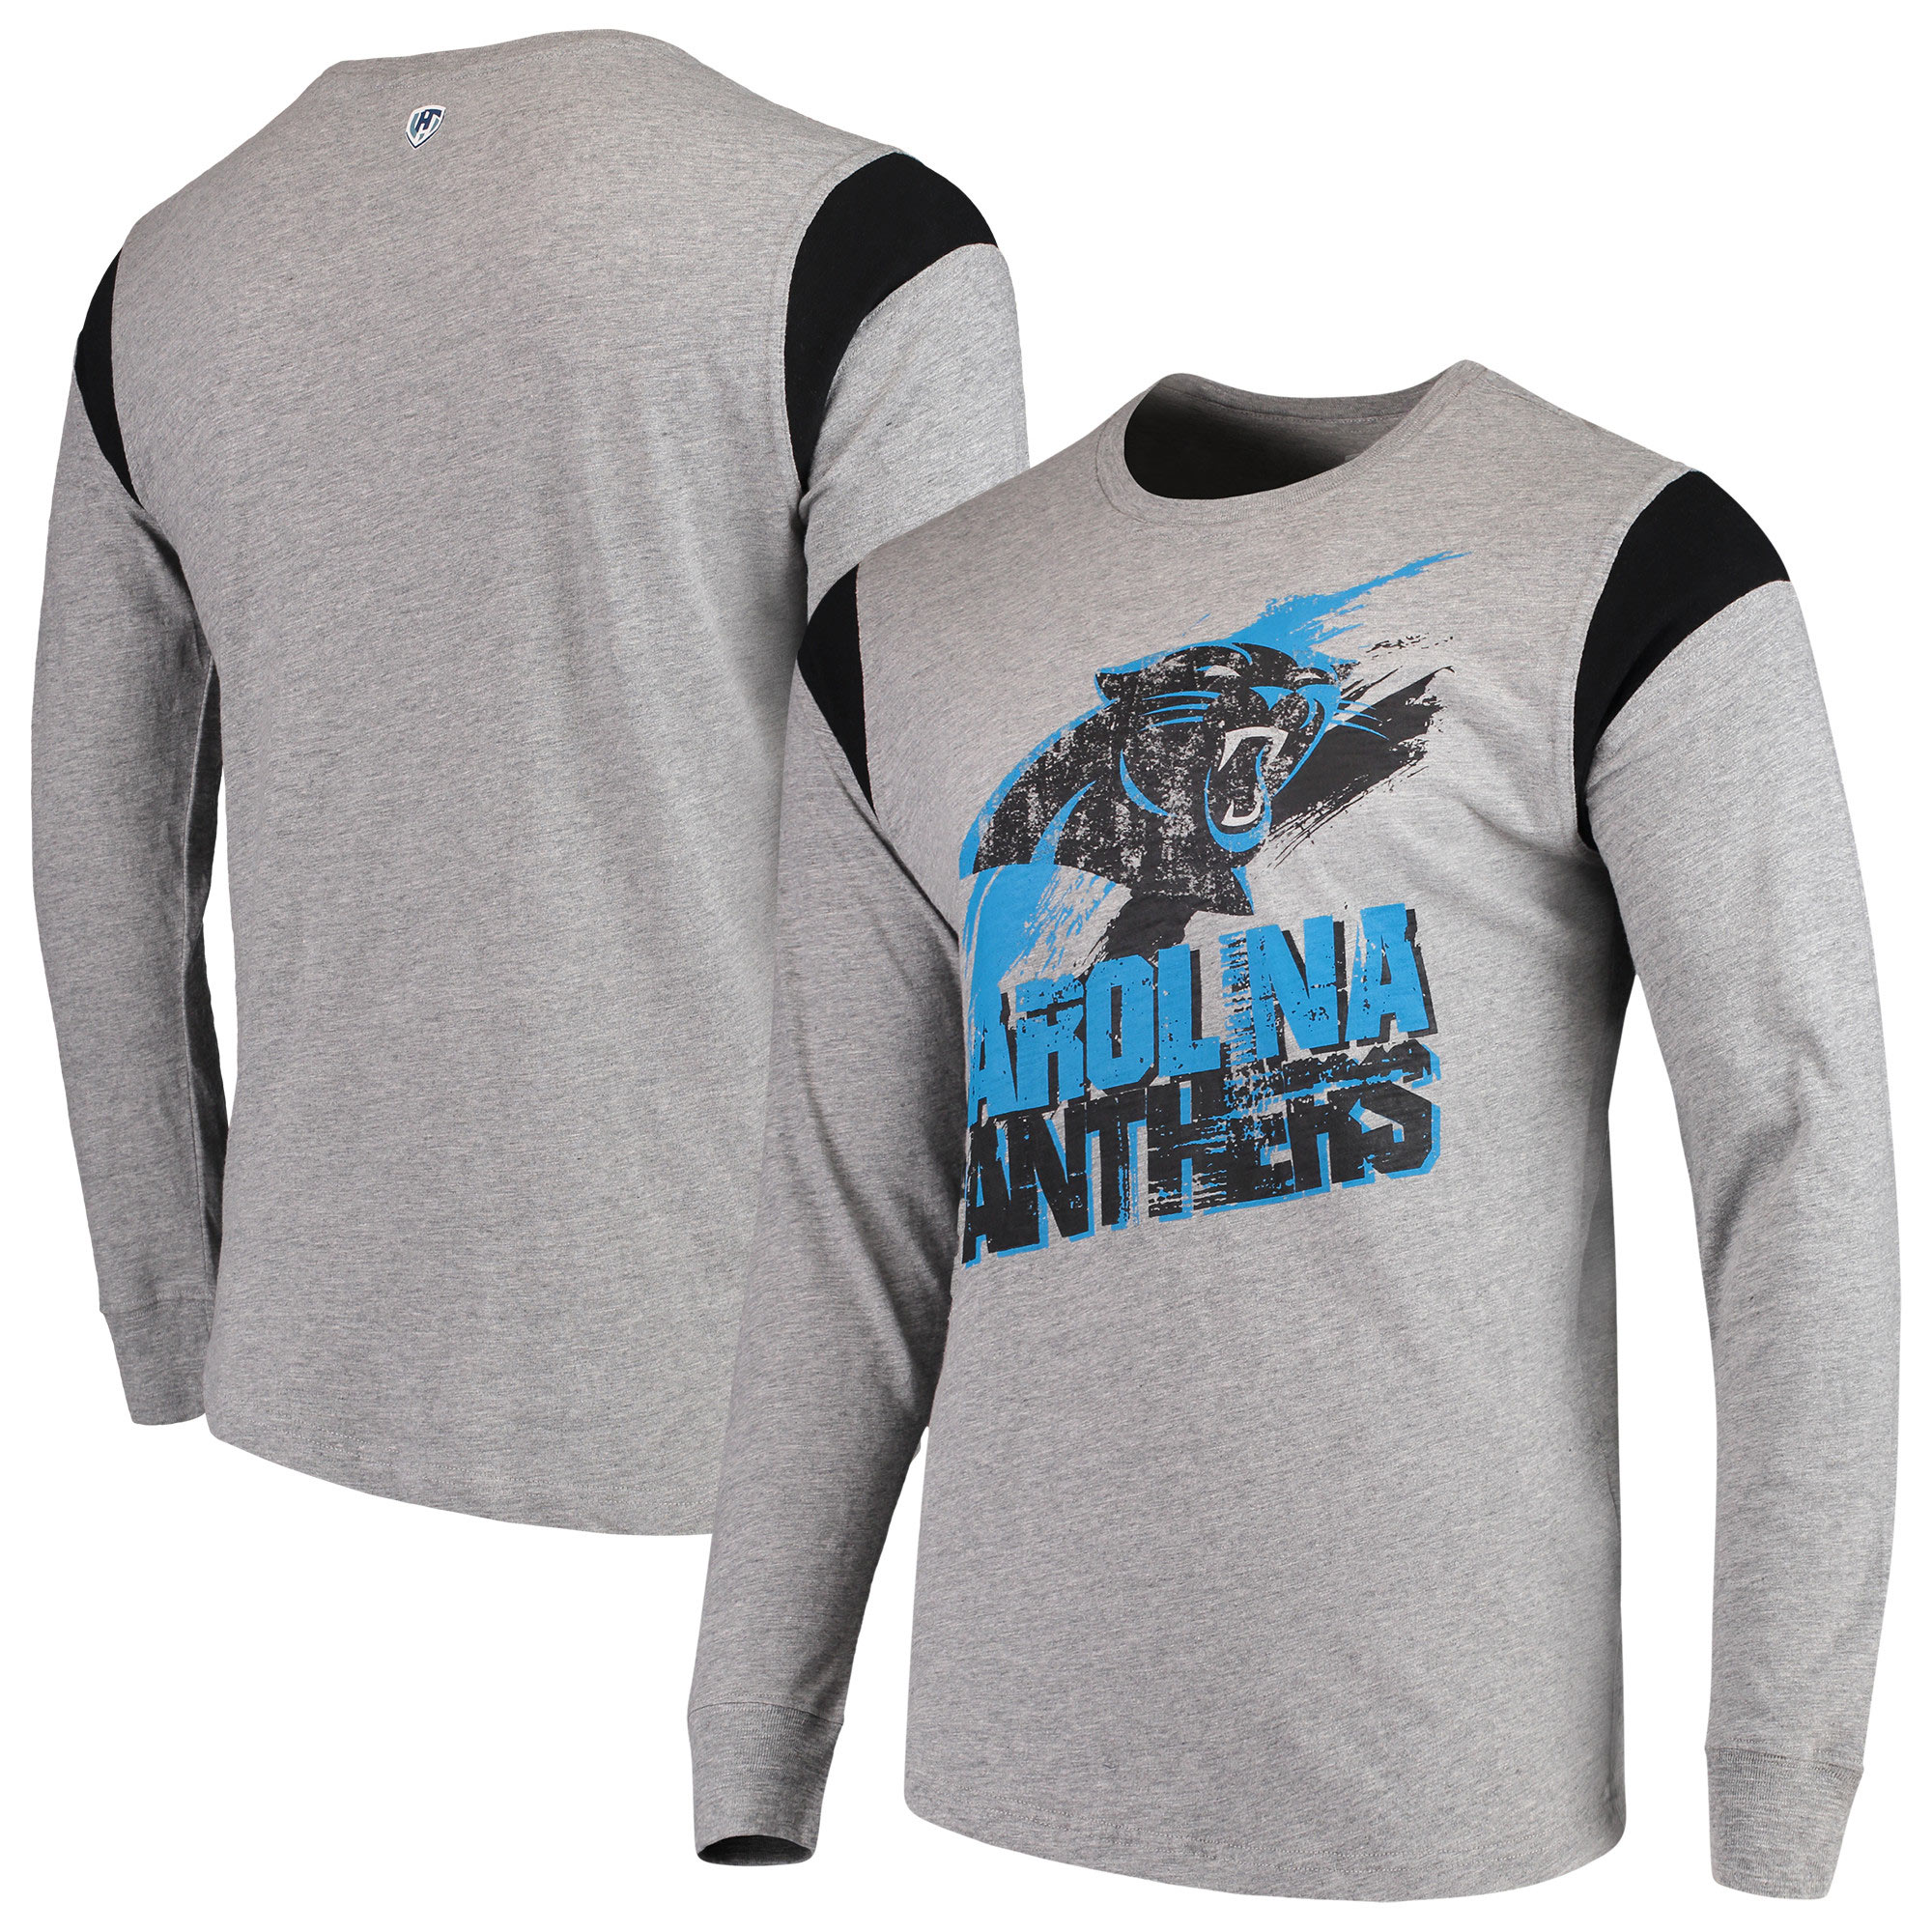 Carolina Panthers G-III Sports by Carl Banks Wide Receiver Long Sleeve T-Shirt - Heathered Gray/Black